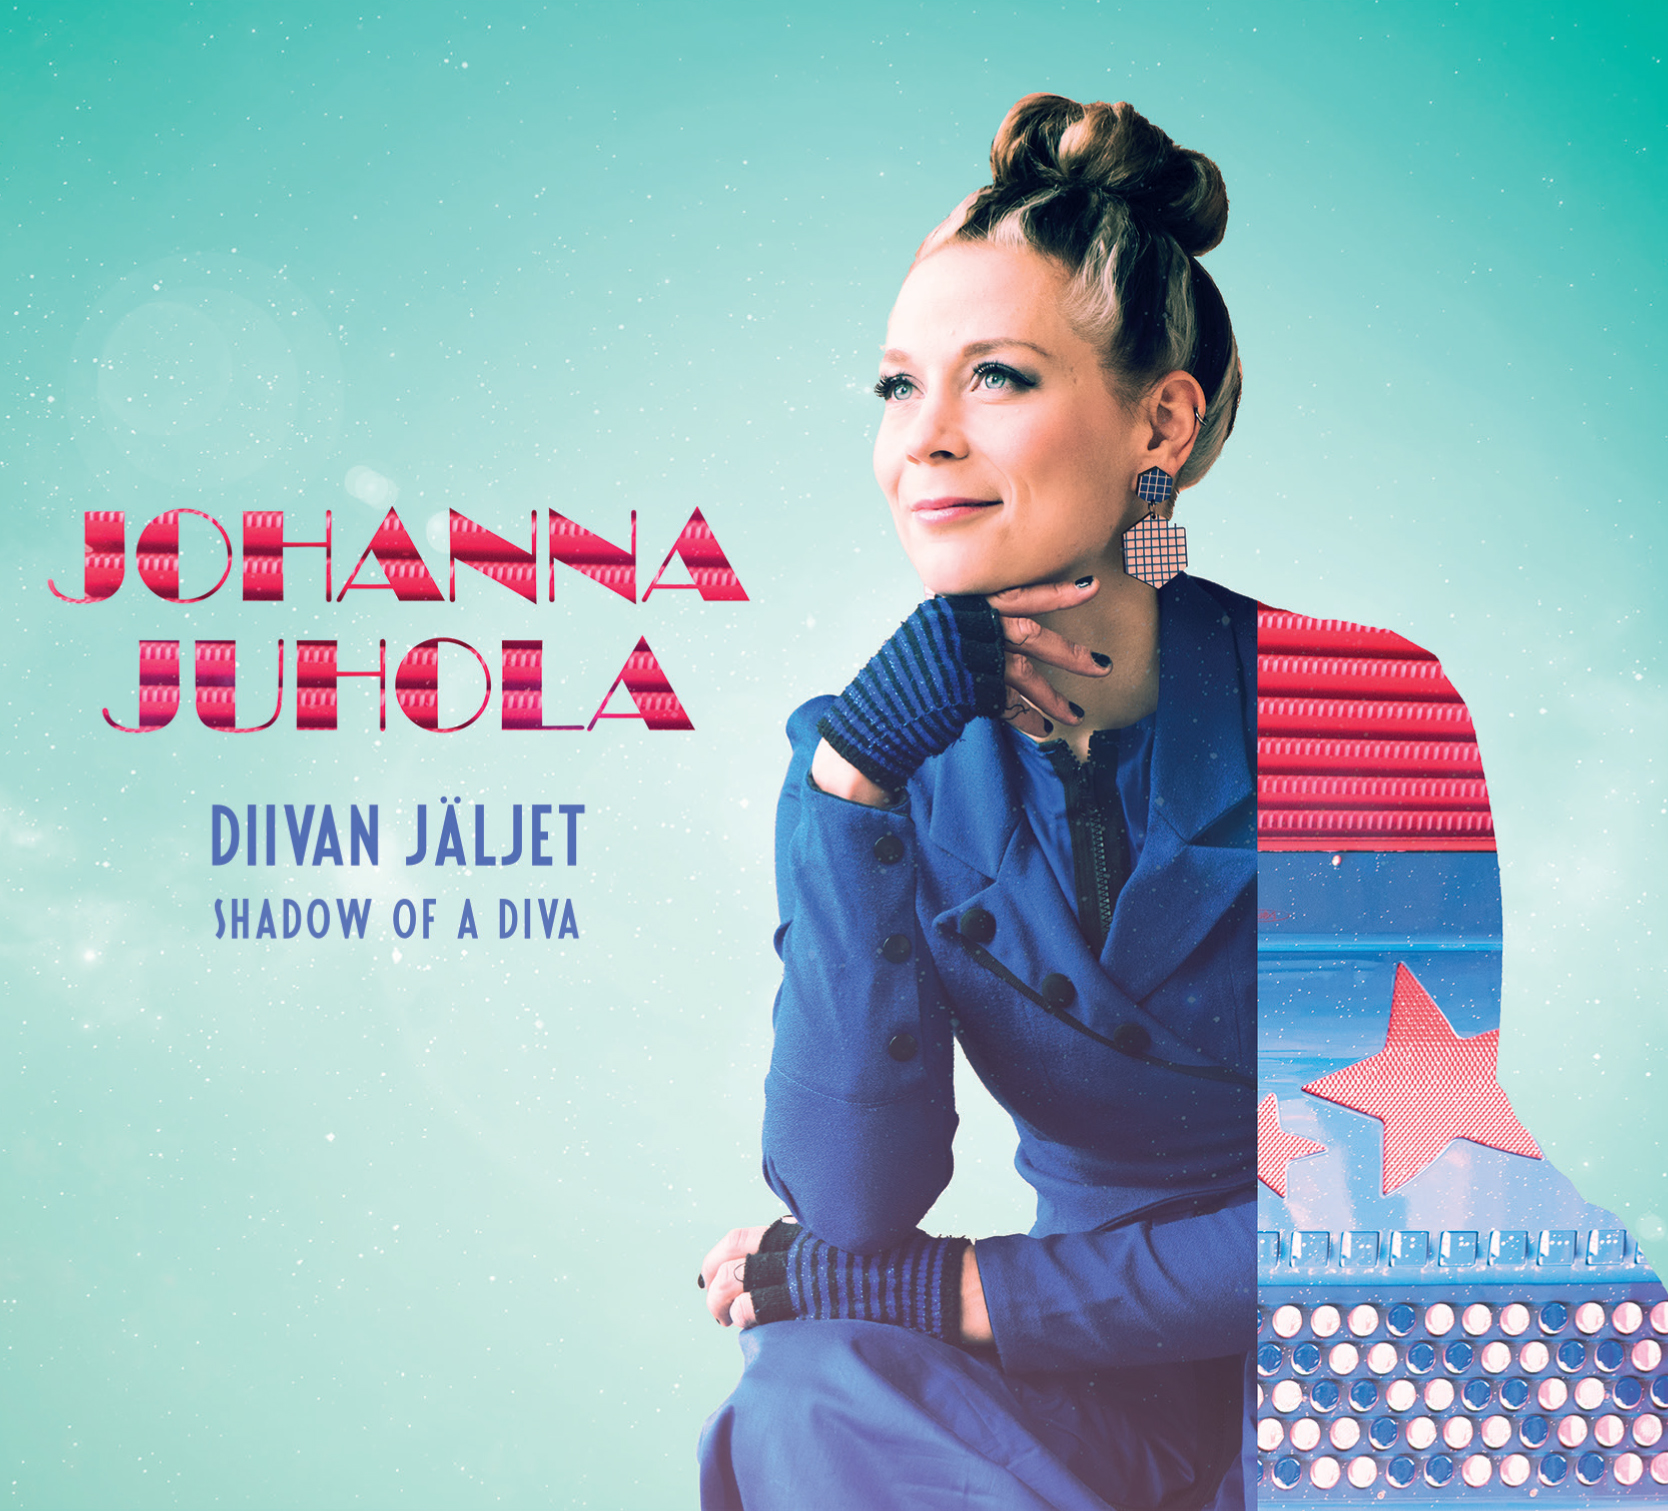 Download print quality CD cover photo  HERE .  JOHANNA JUHOLA: Diivan jäljet - Shadow of a Diva  JJCD003, 2017  Listen to a compilation of the tunes of this album on  SOUNDCLOUD .